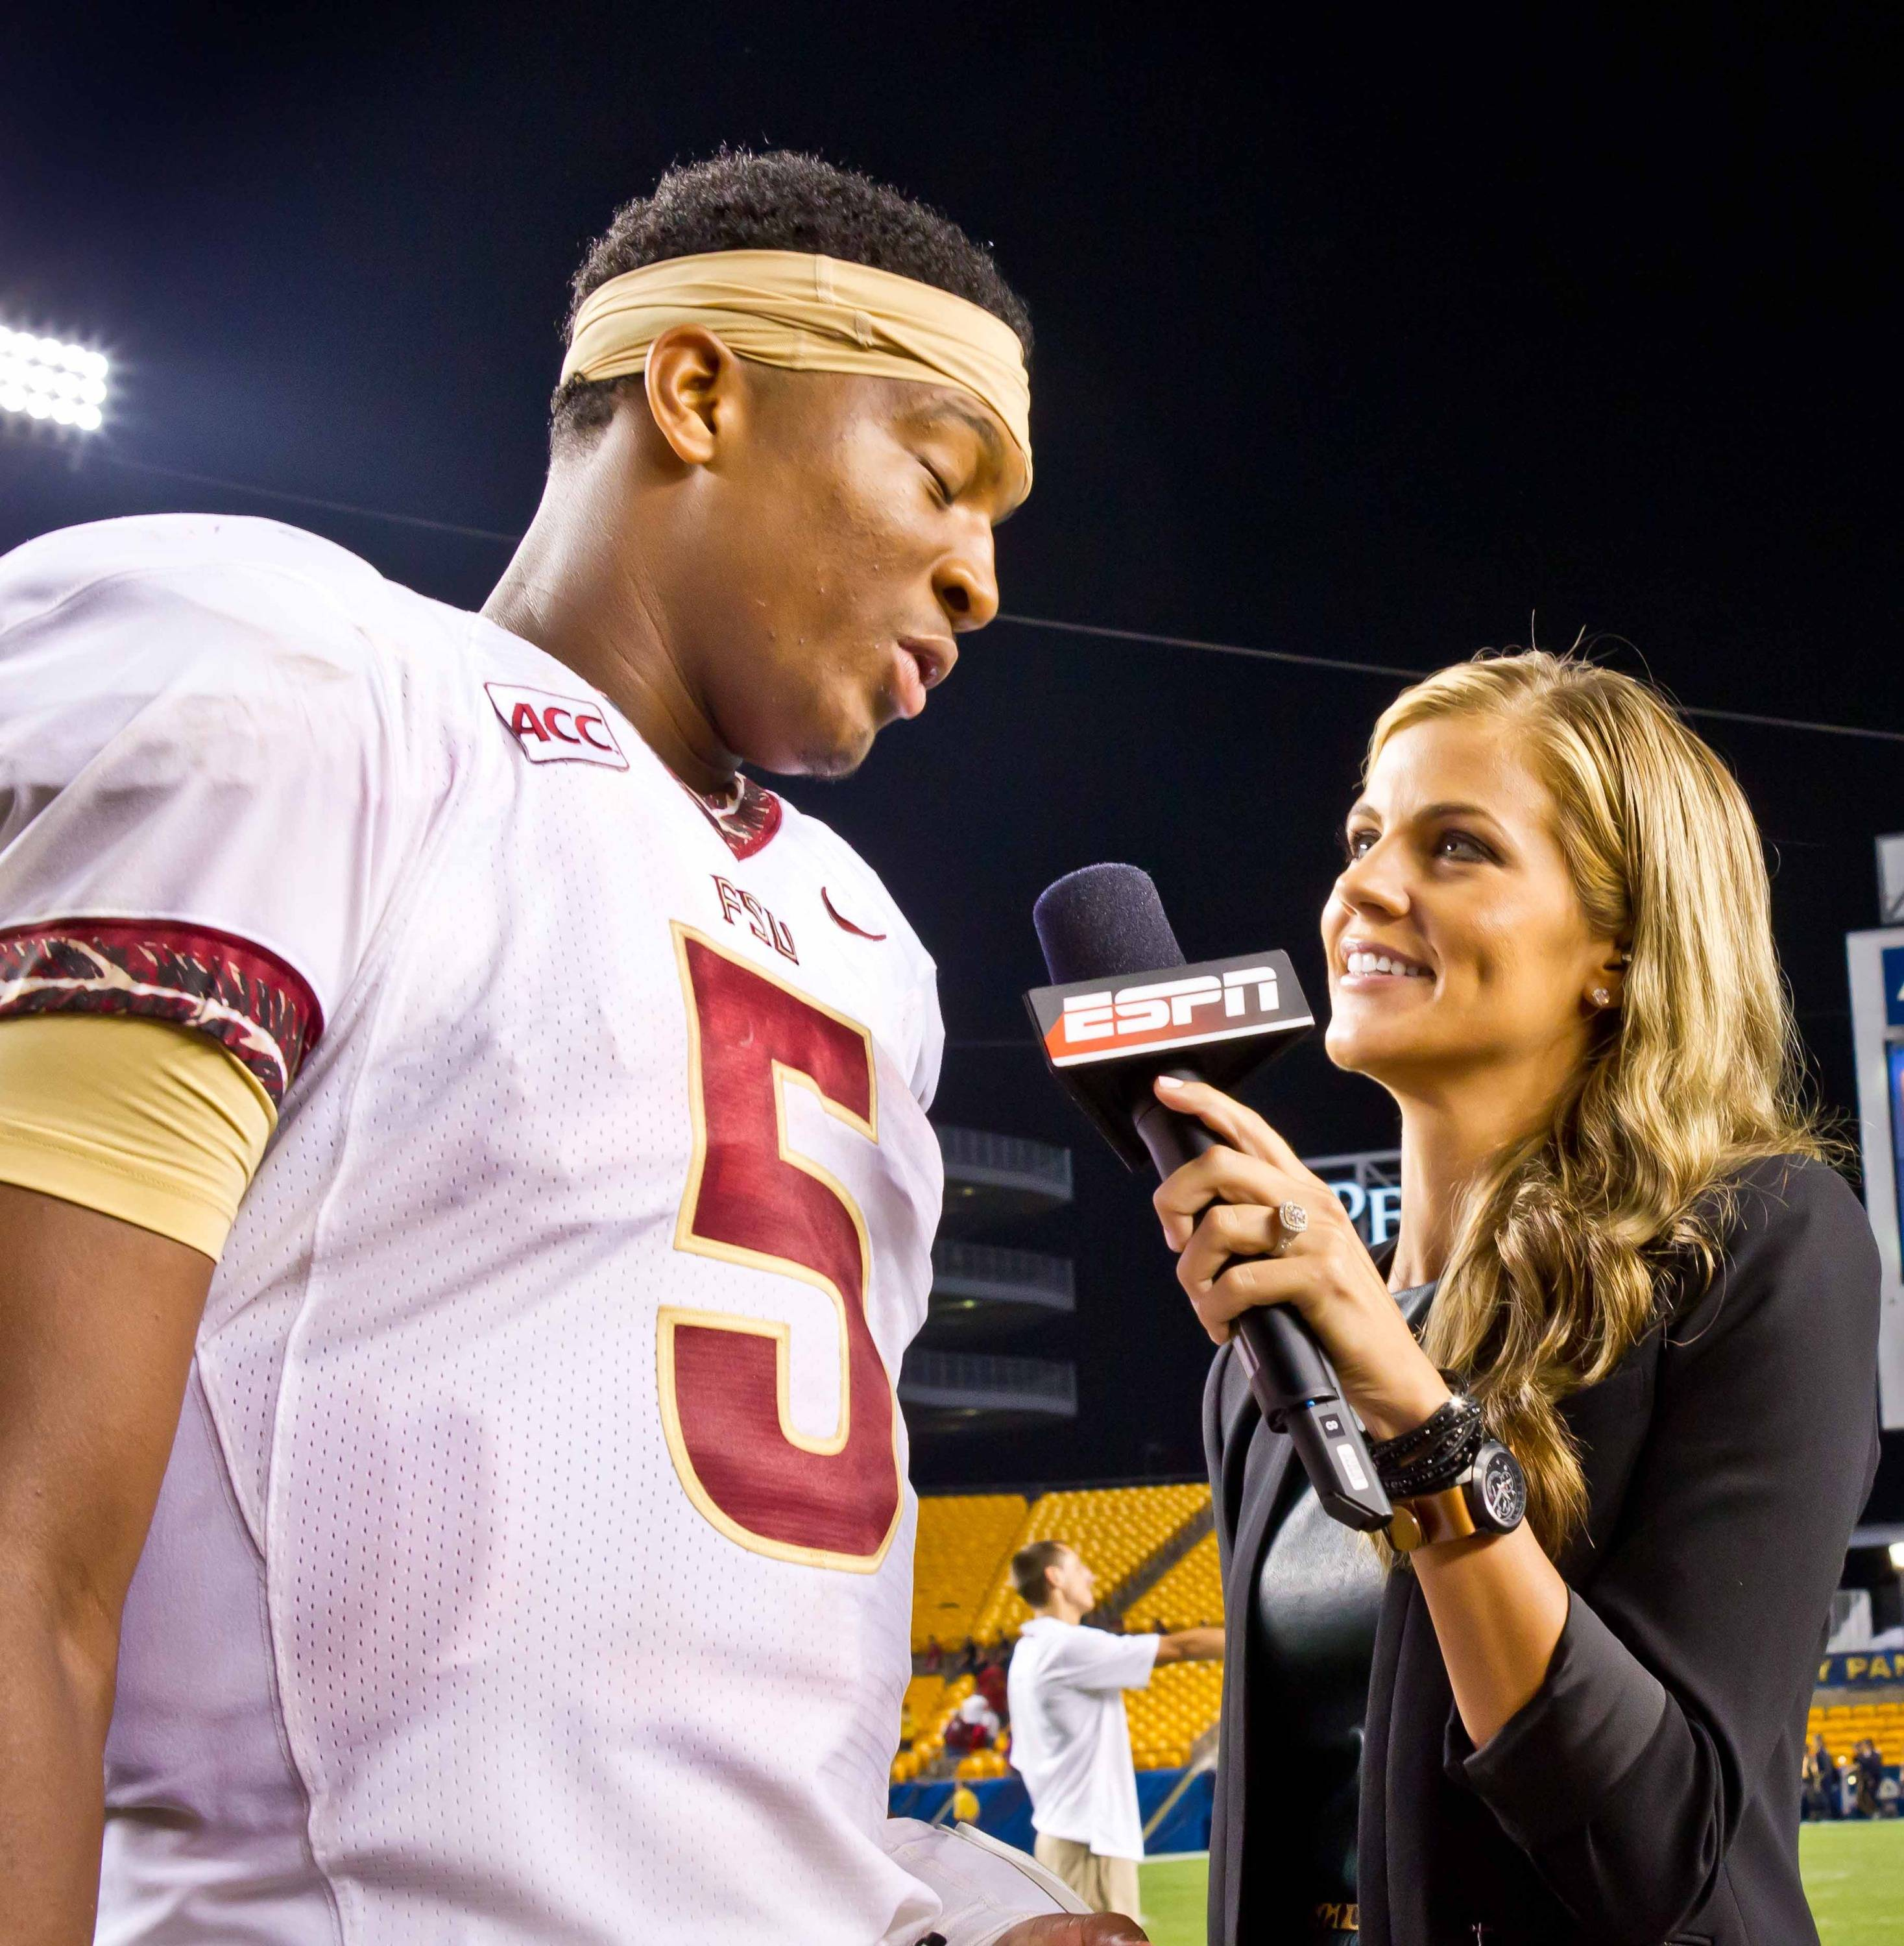 Jameis Winston (5) is interviewed by ESPN's Samantha Ponder.